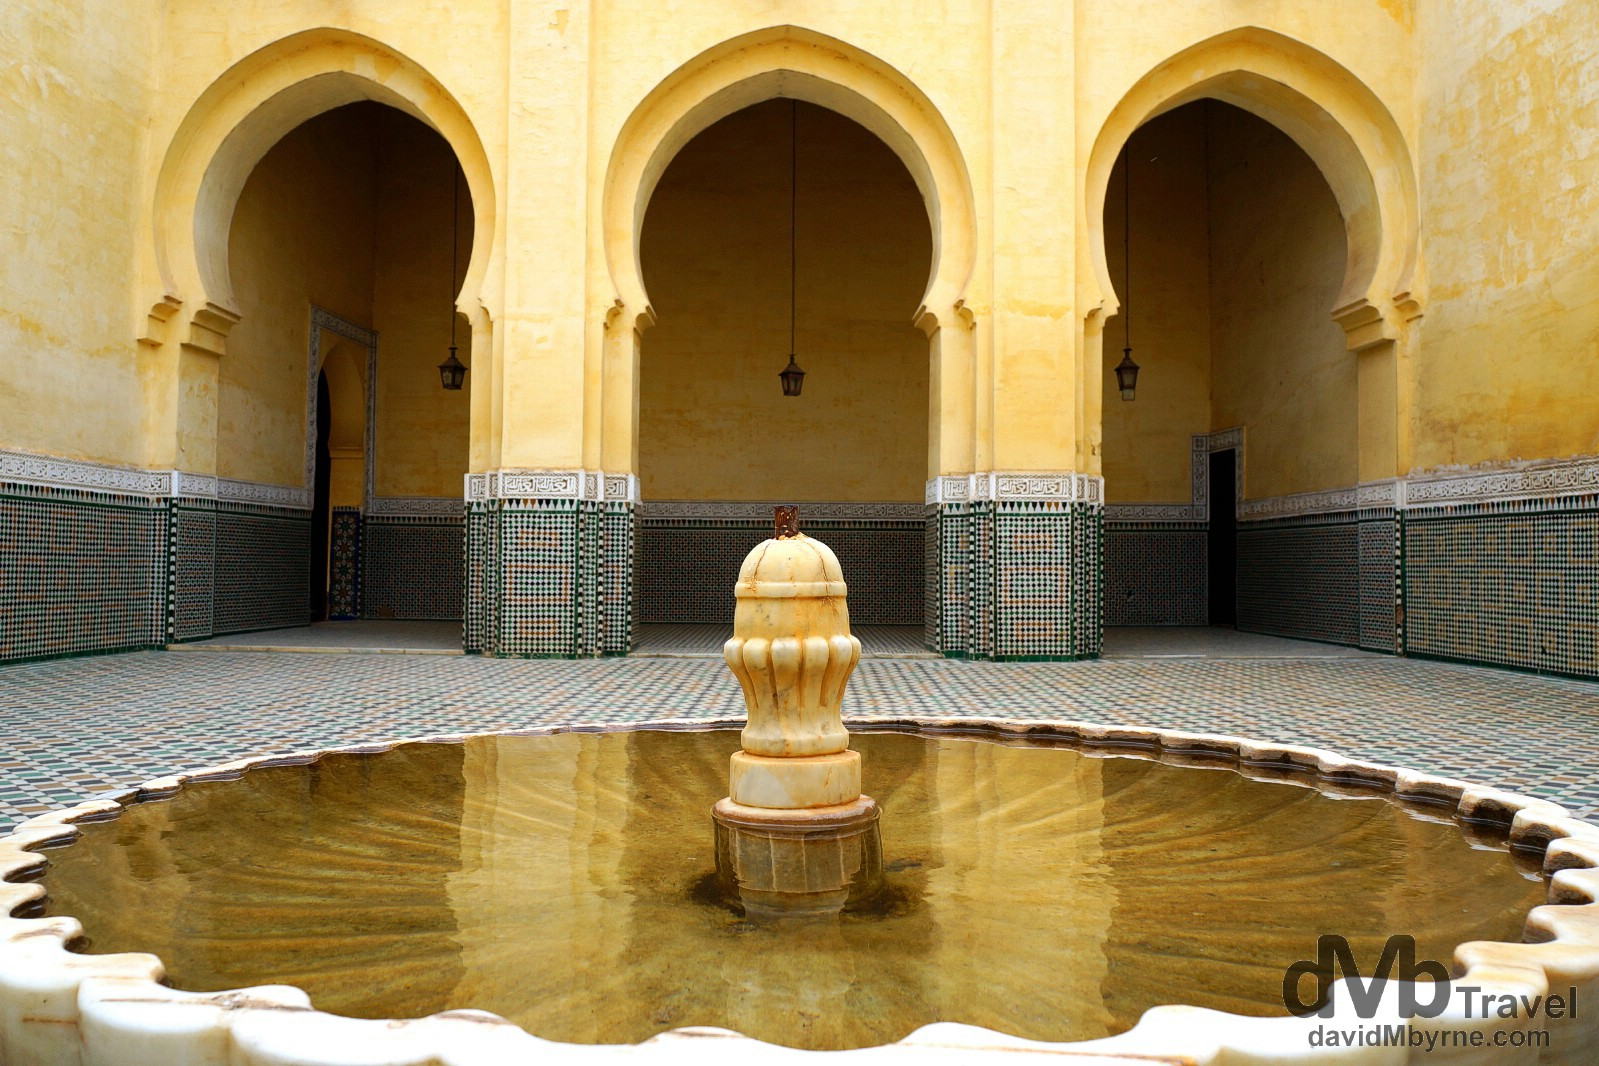 A courtyard of the Moulay Ismail Mausoleum in Meknes, Morocco. May 24th, 2014.